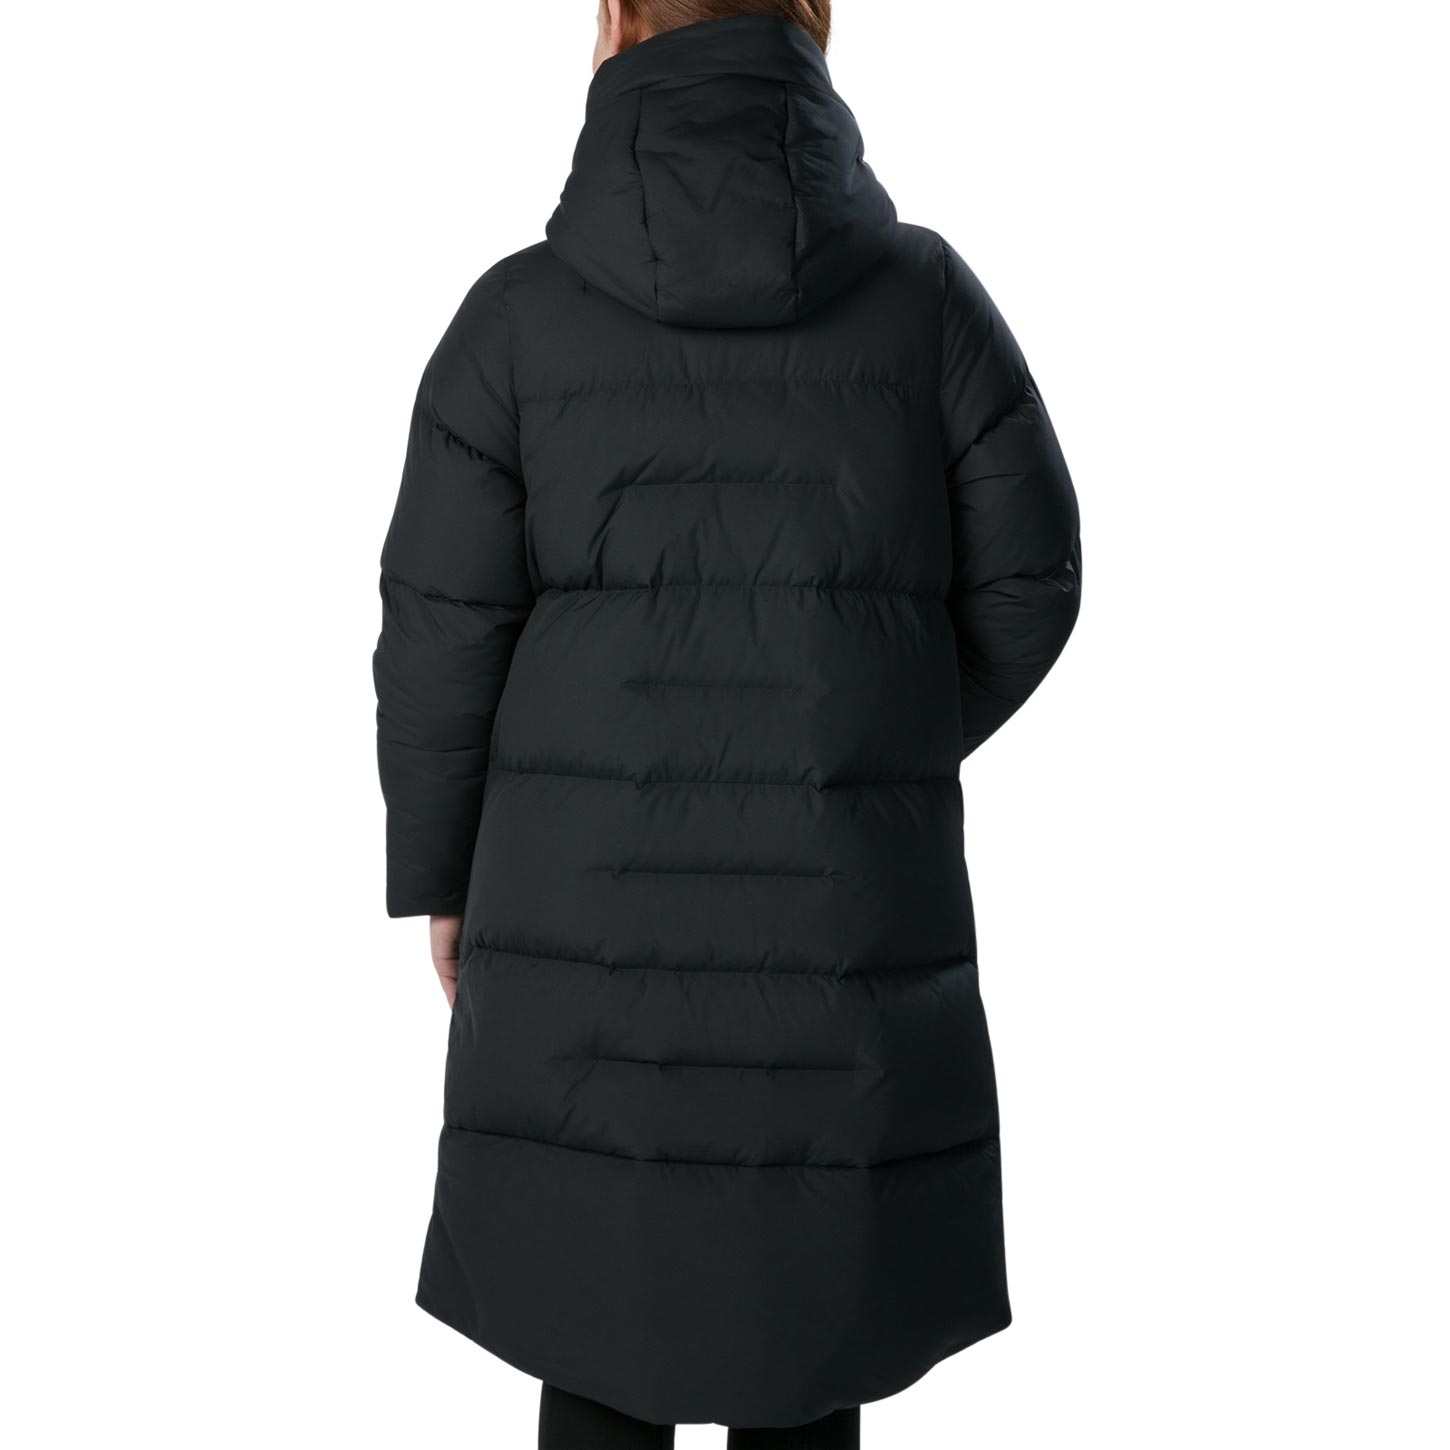 Image of Berghaus Women's Combust Reflect Long Down Insulated Jacket - Jet Black BP6